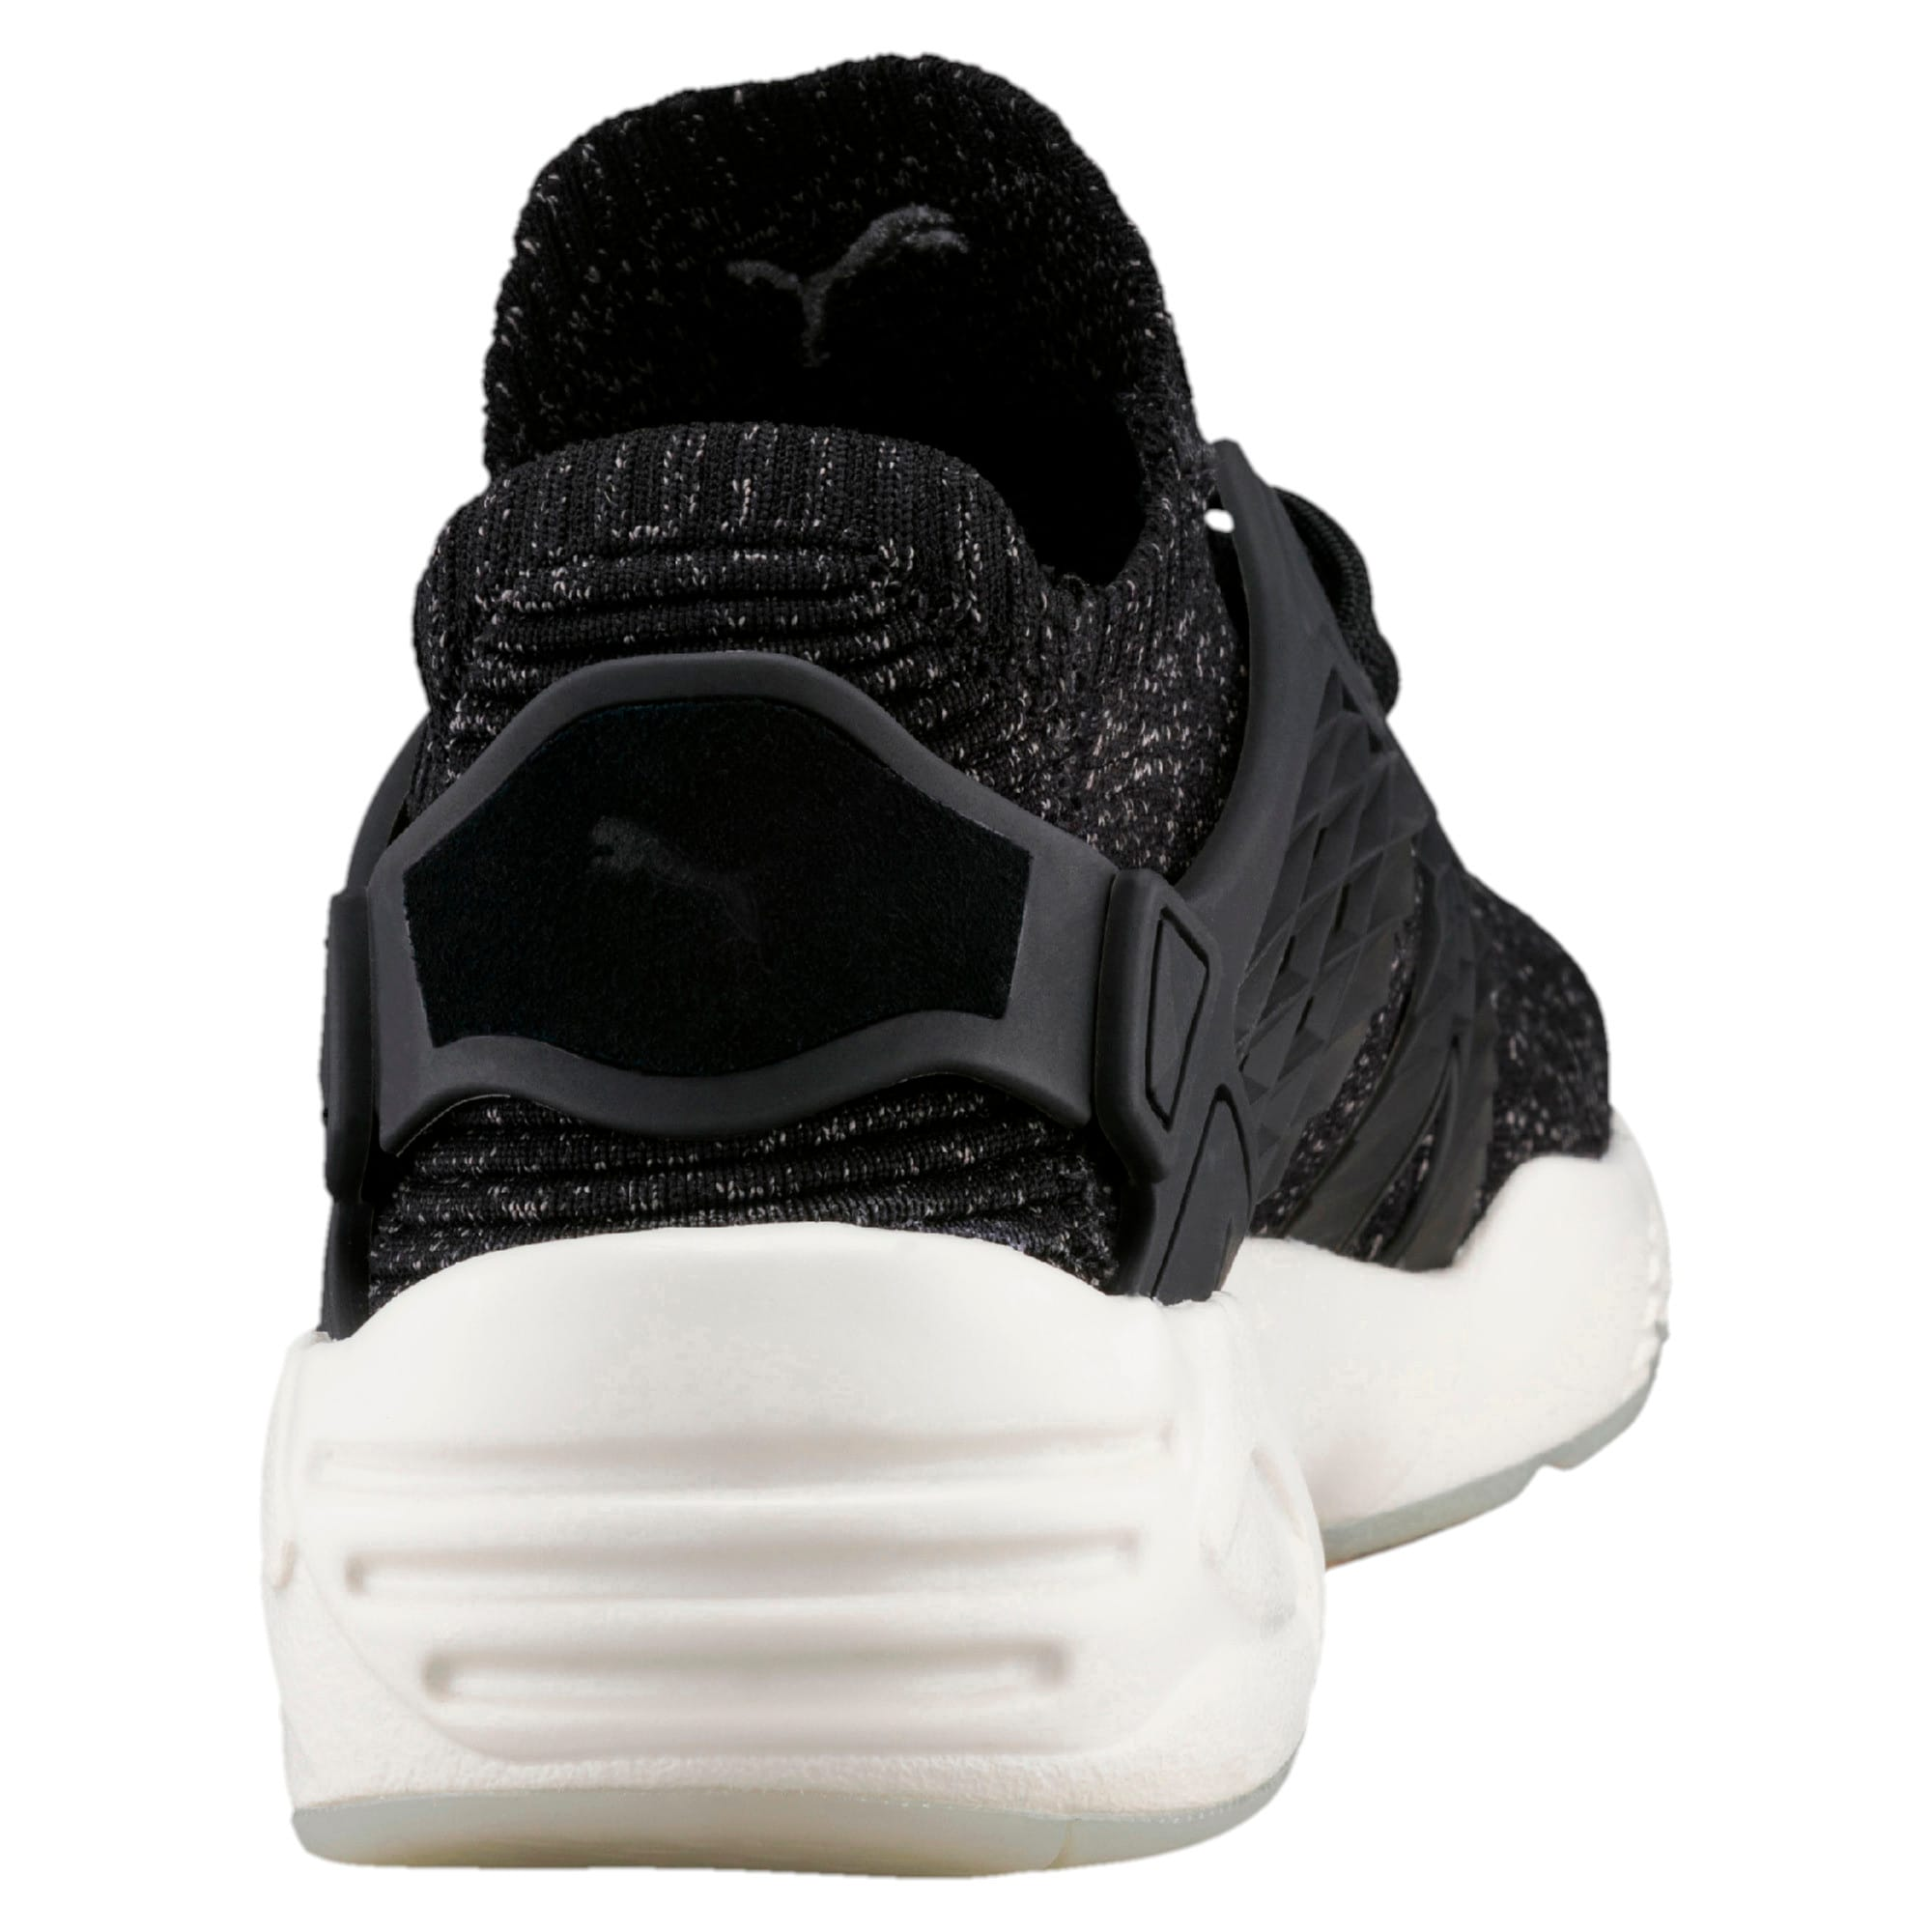 Thumbnail 3 of Blaze Cage evoKNIT Trainers, P Black-Steel Gray-W White, medium-IND